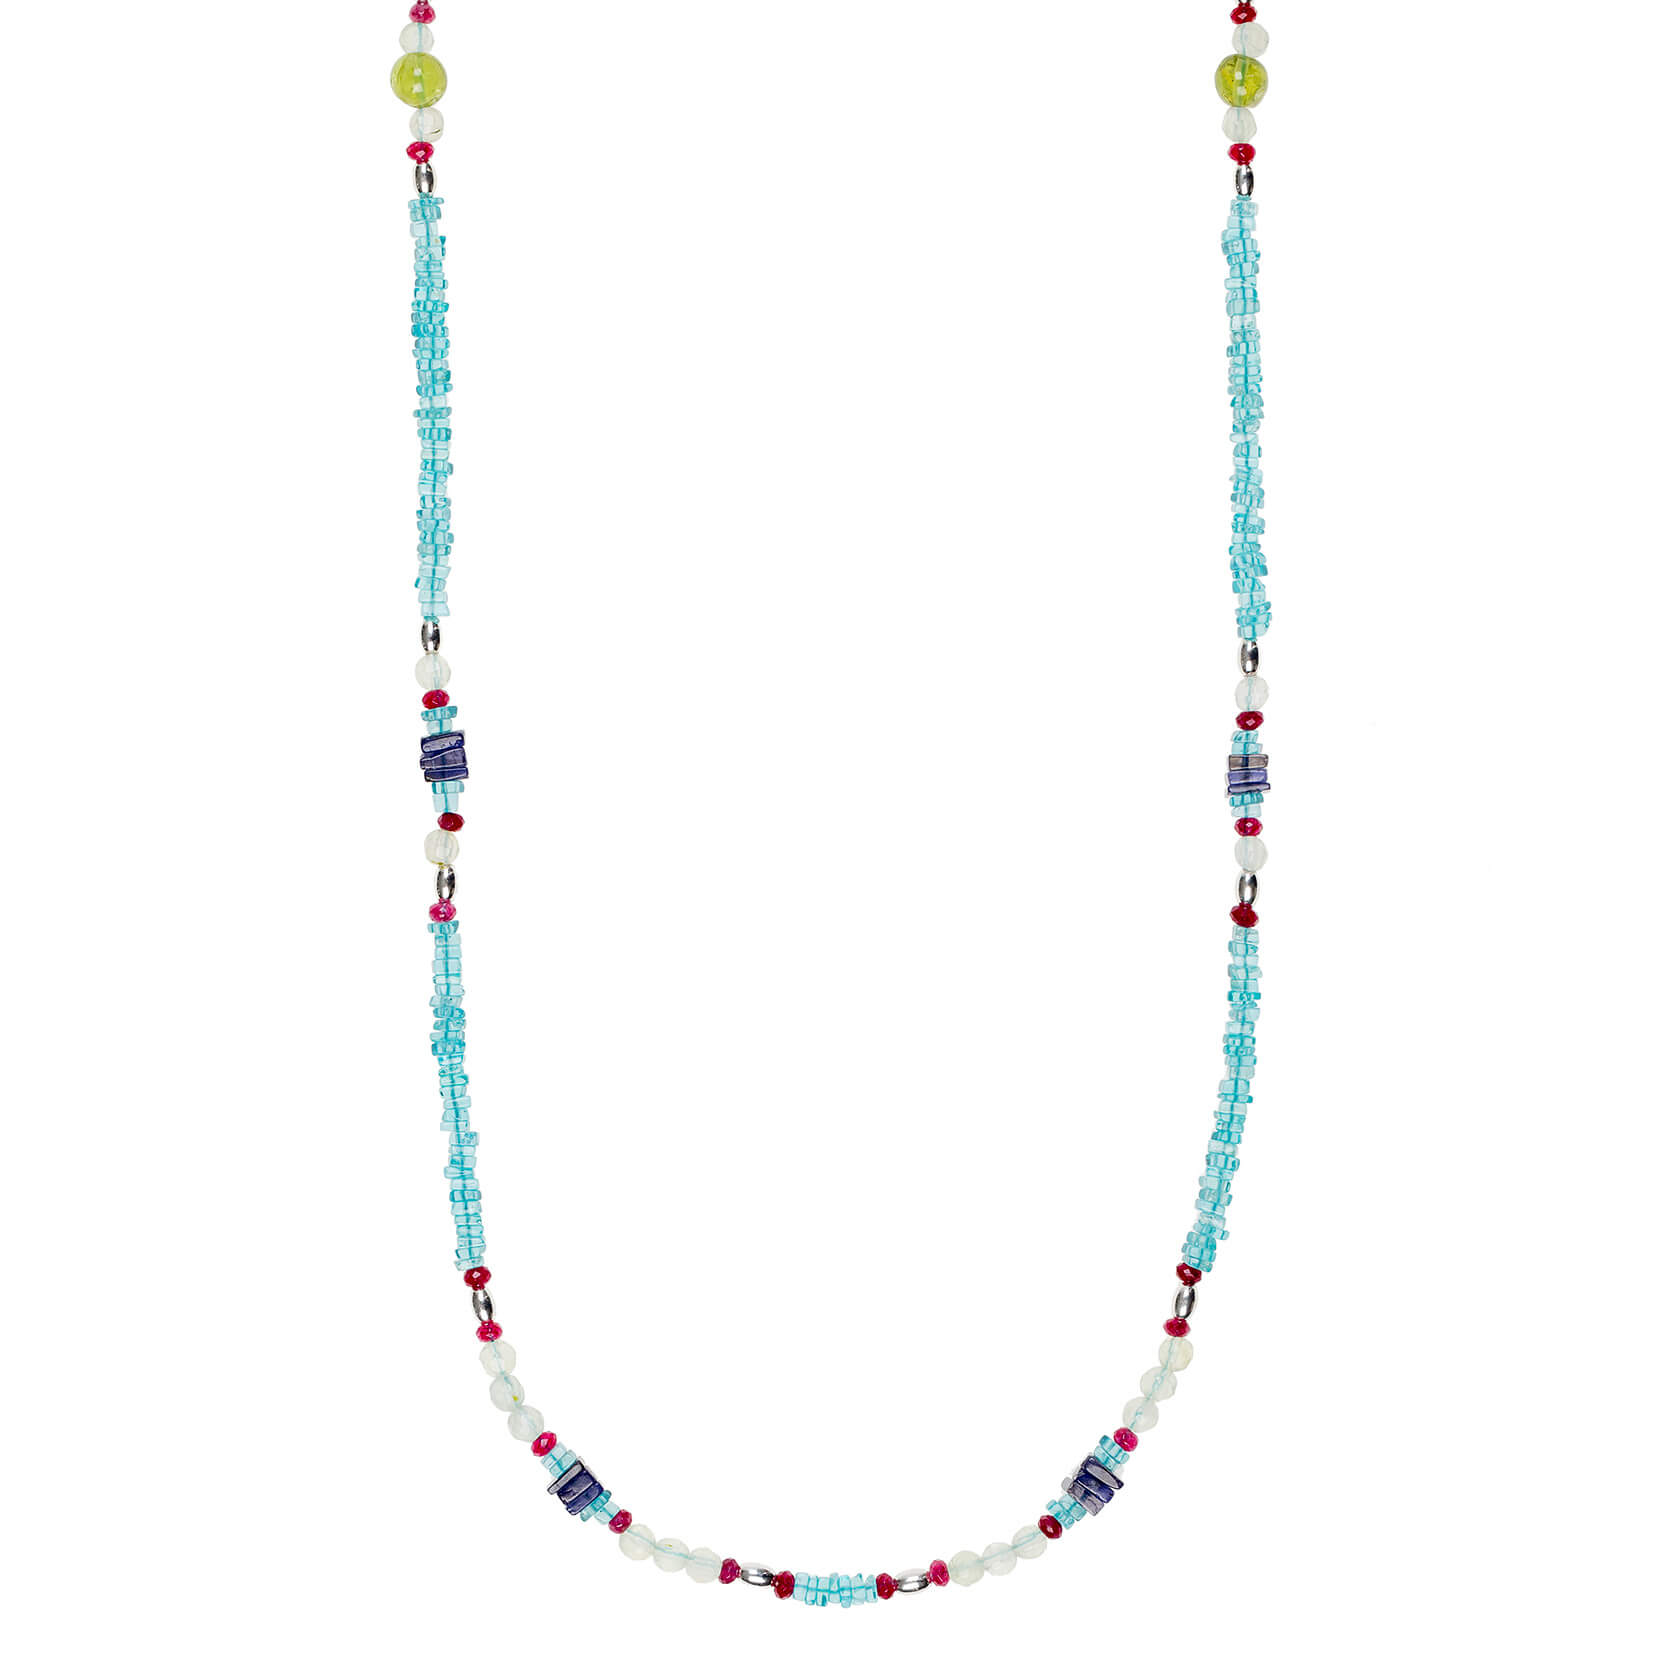 Apatite long necklace